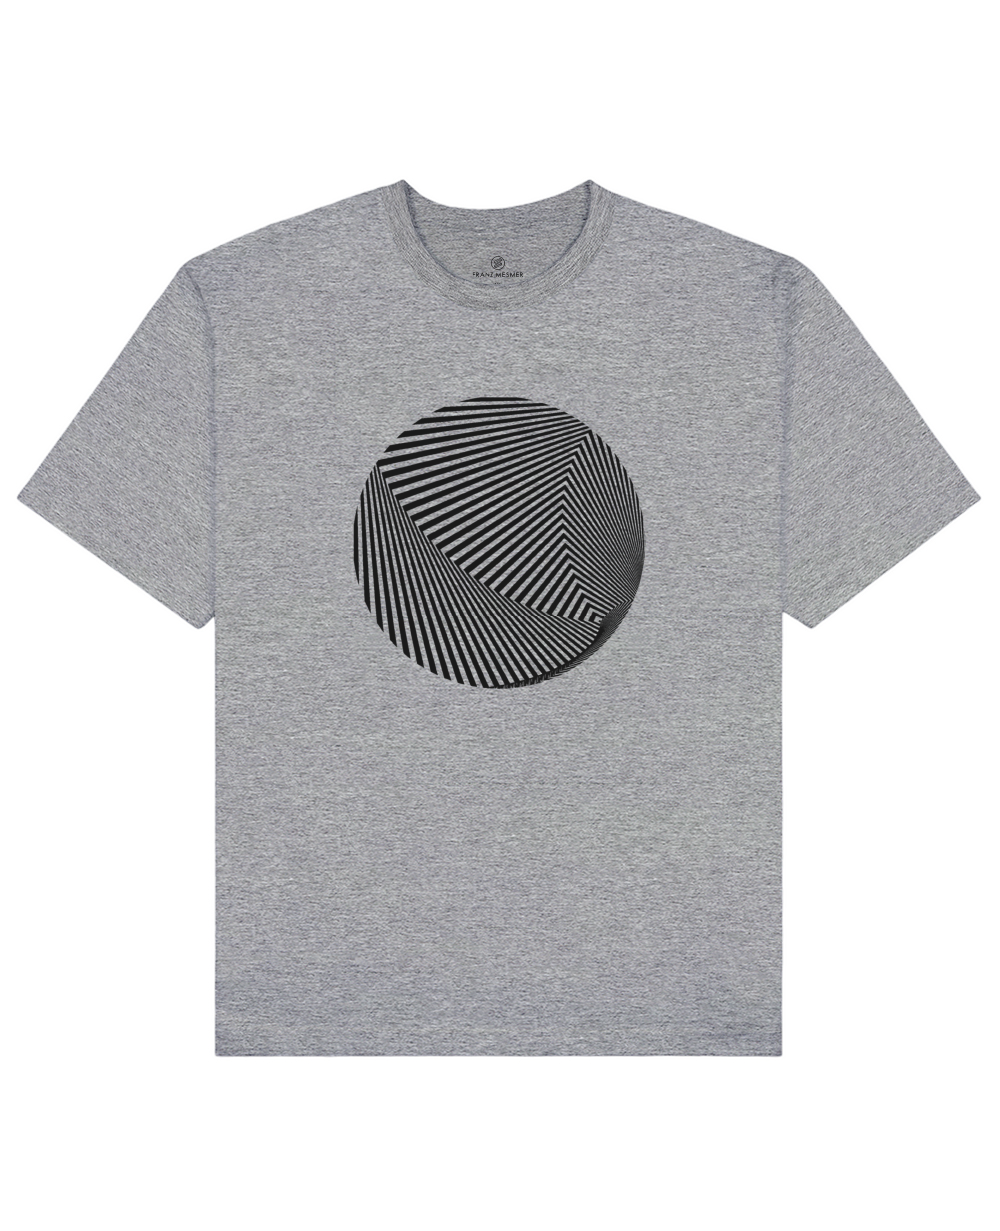 Optical Illusion Print T-Shirt in Gray - T-Shirts - Franz Mesmer - BRANMA